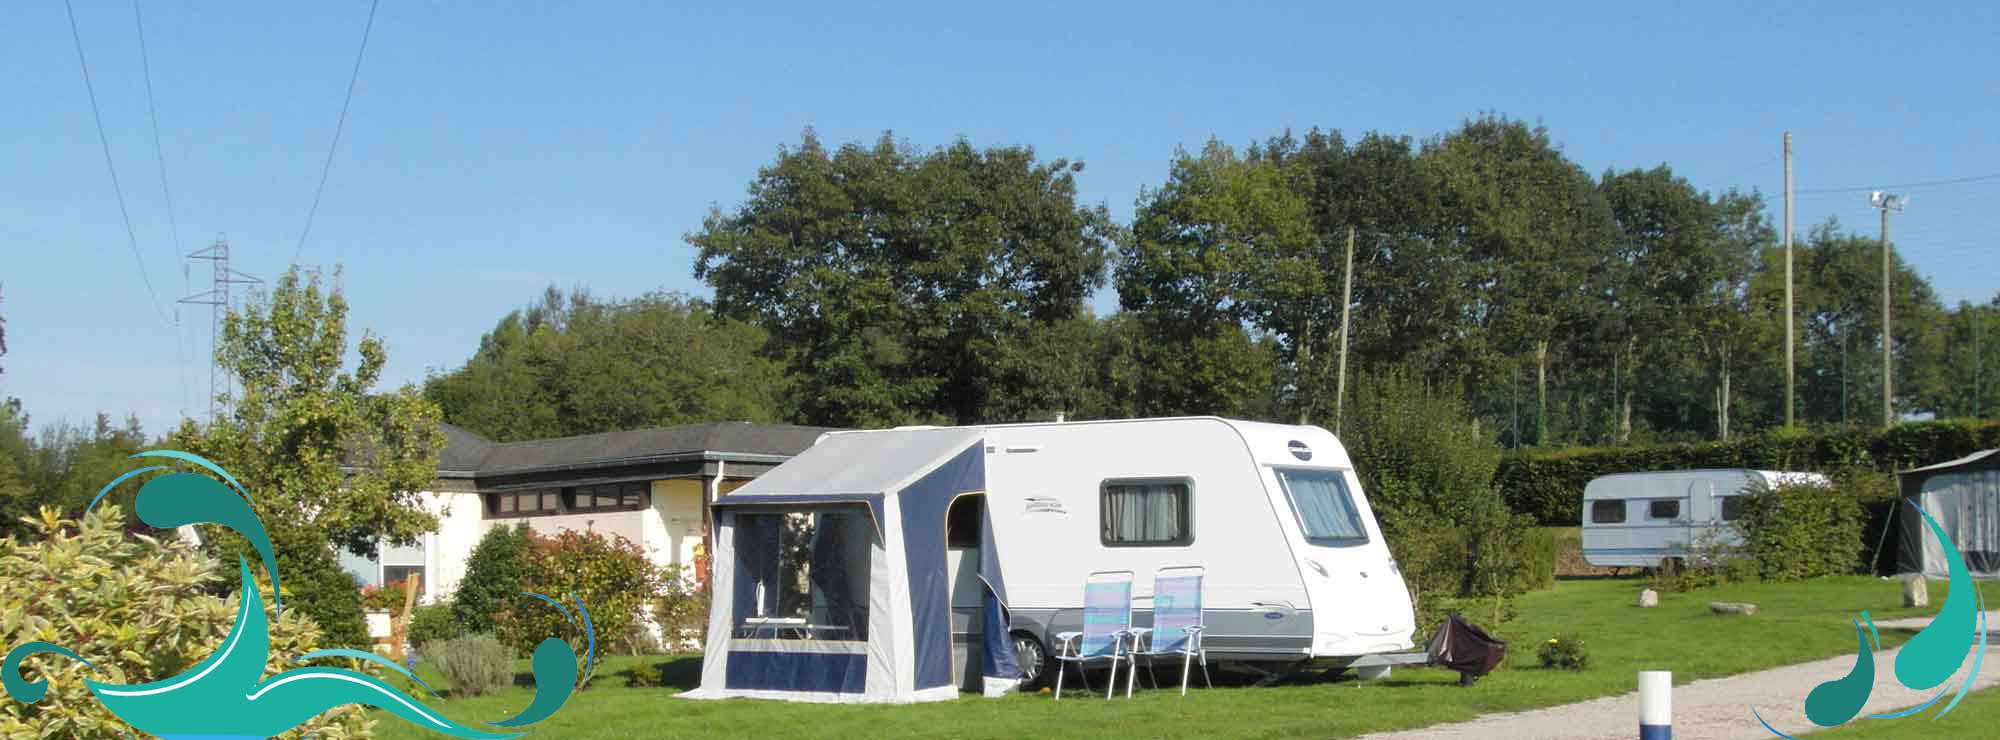 emplacement camping caravane leules les roses